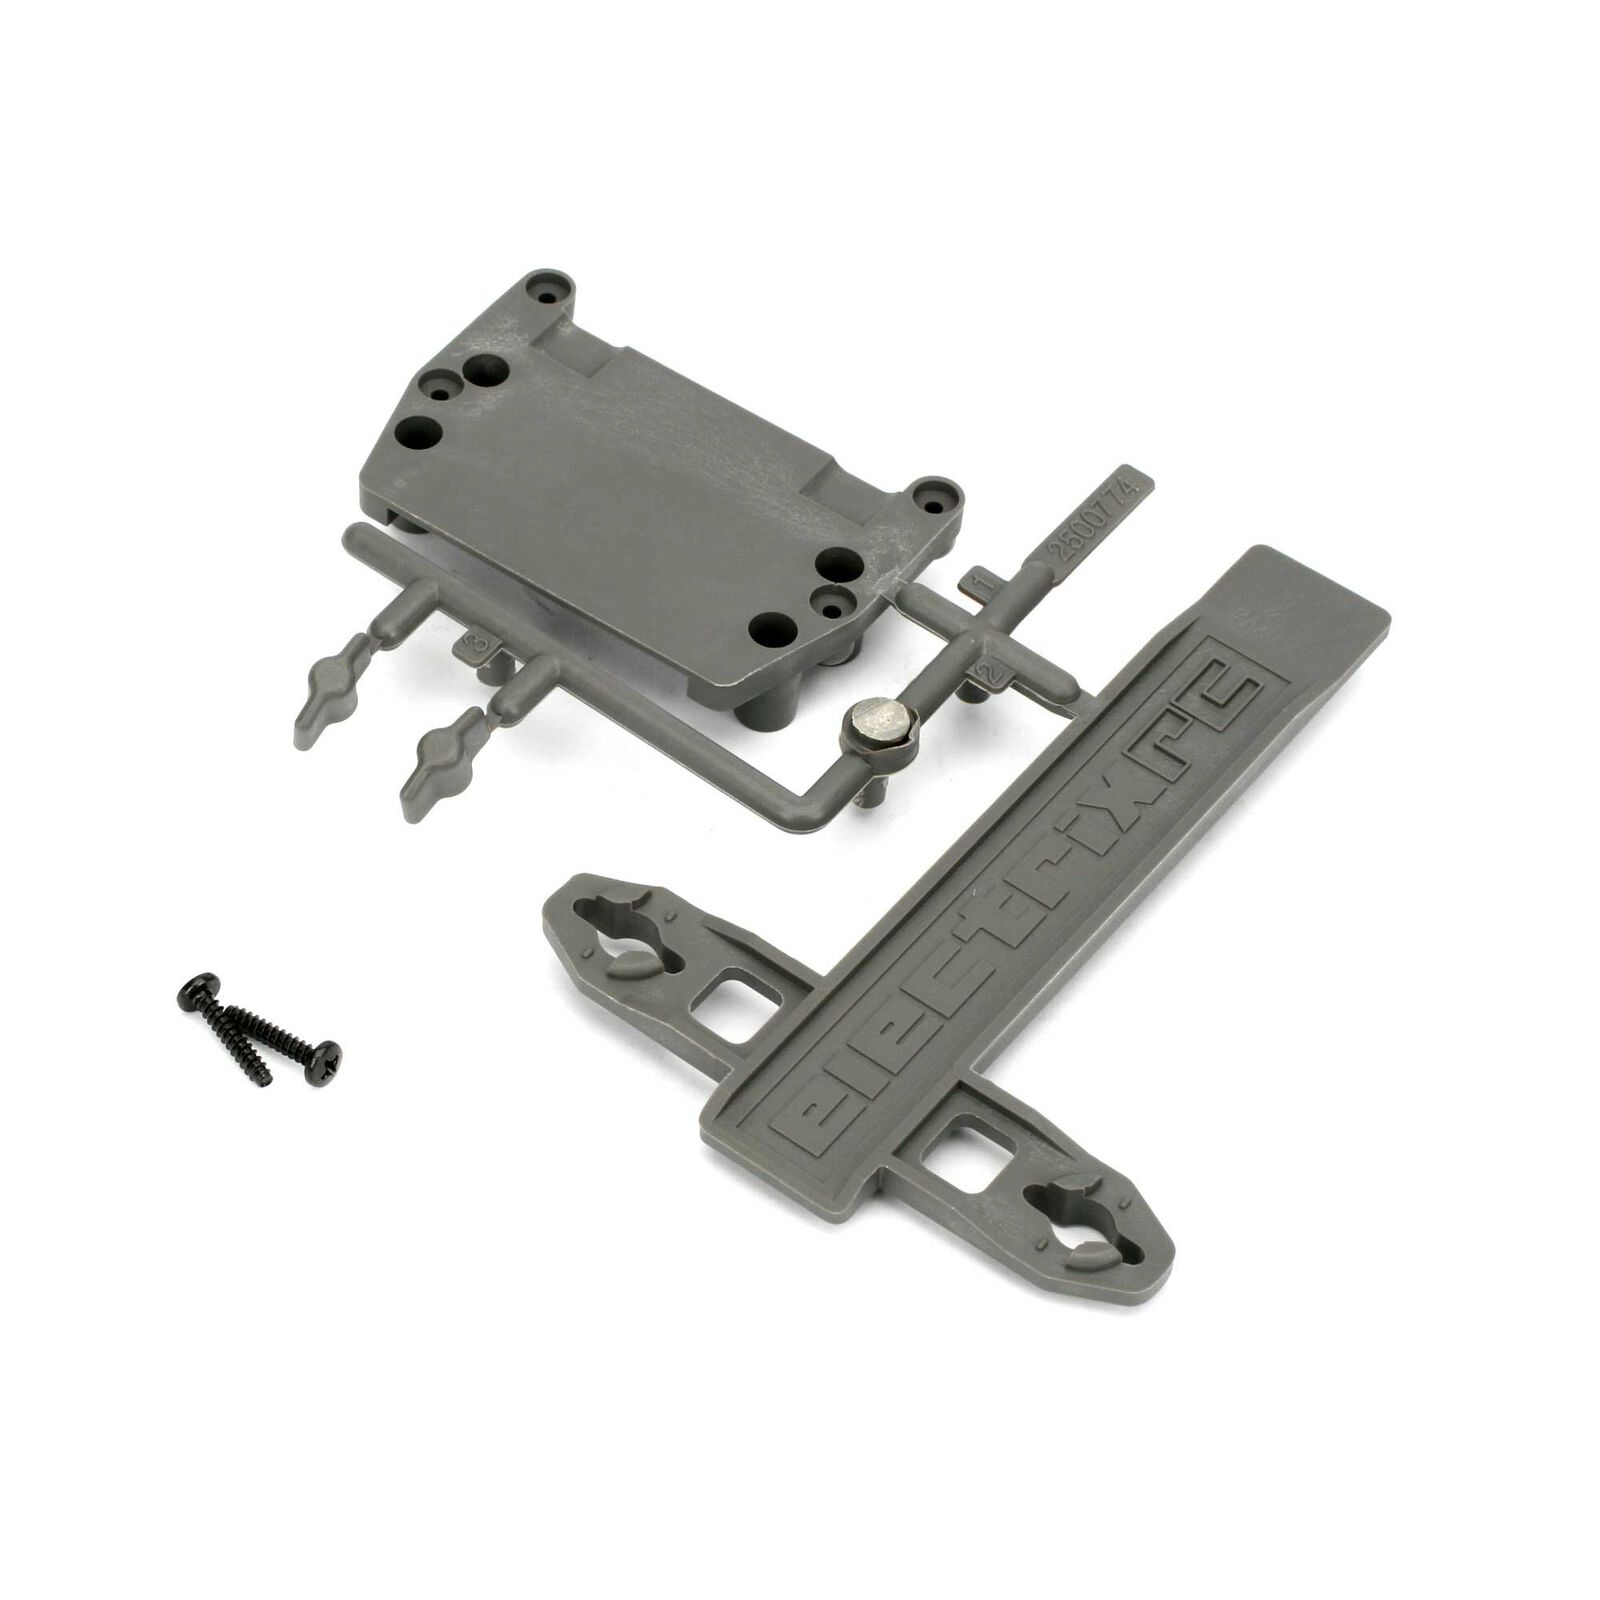 Battery Strap, ESC Plate: 1/10 2WD Circuit, Boost